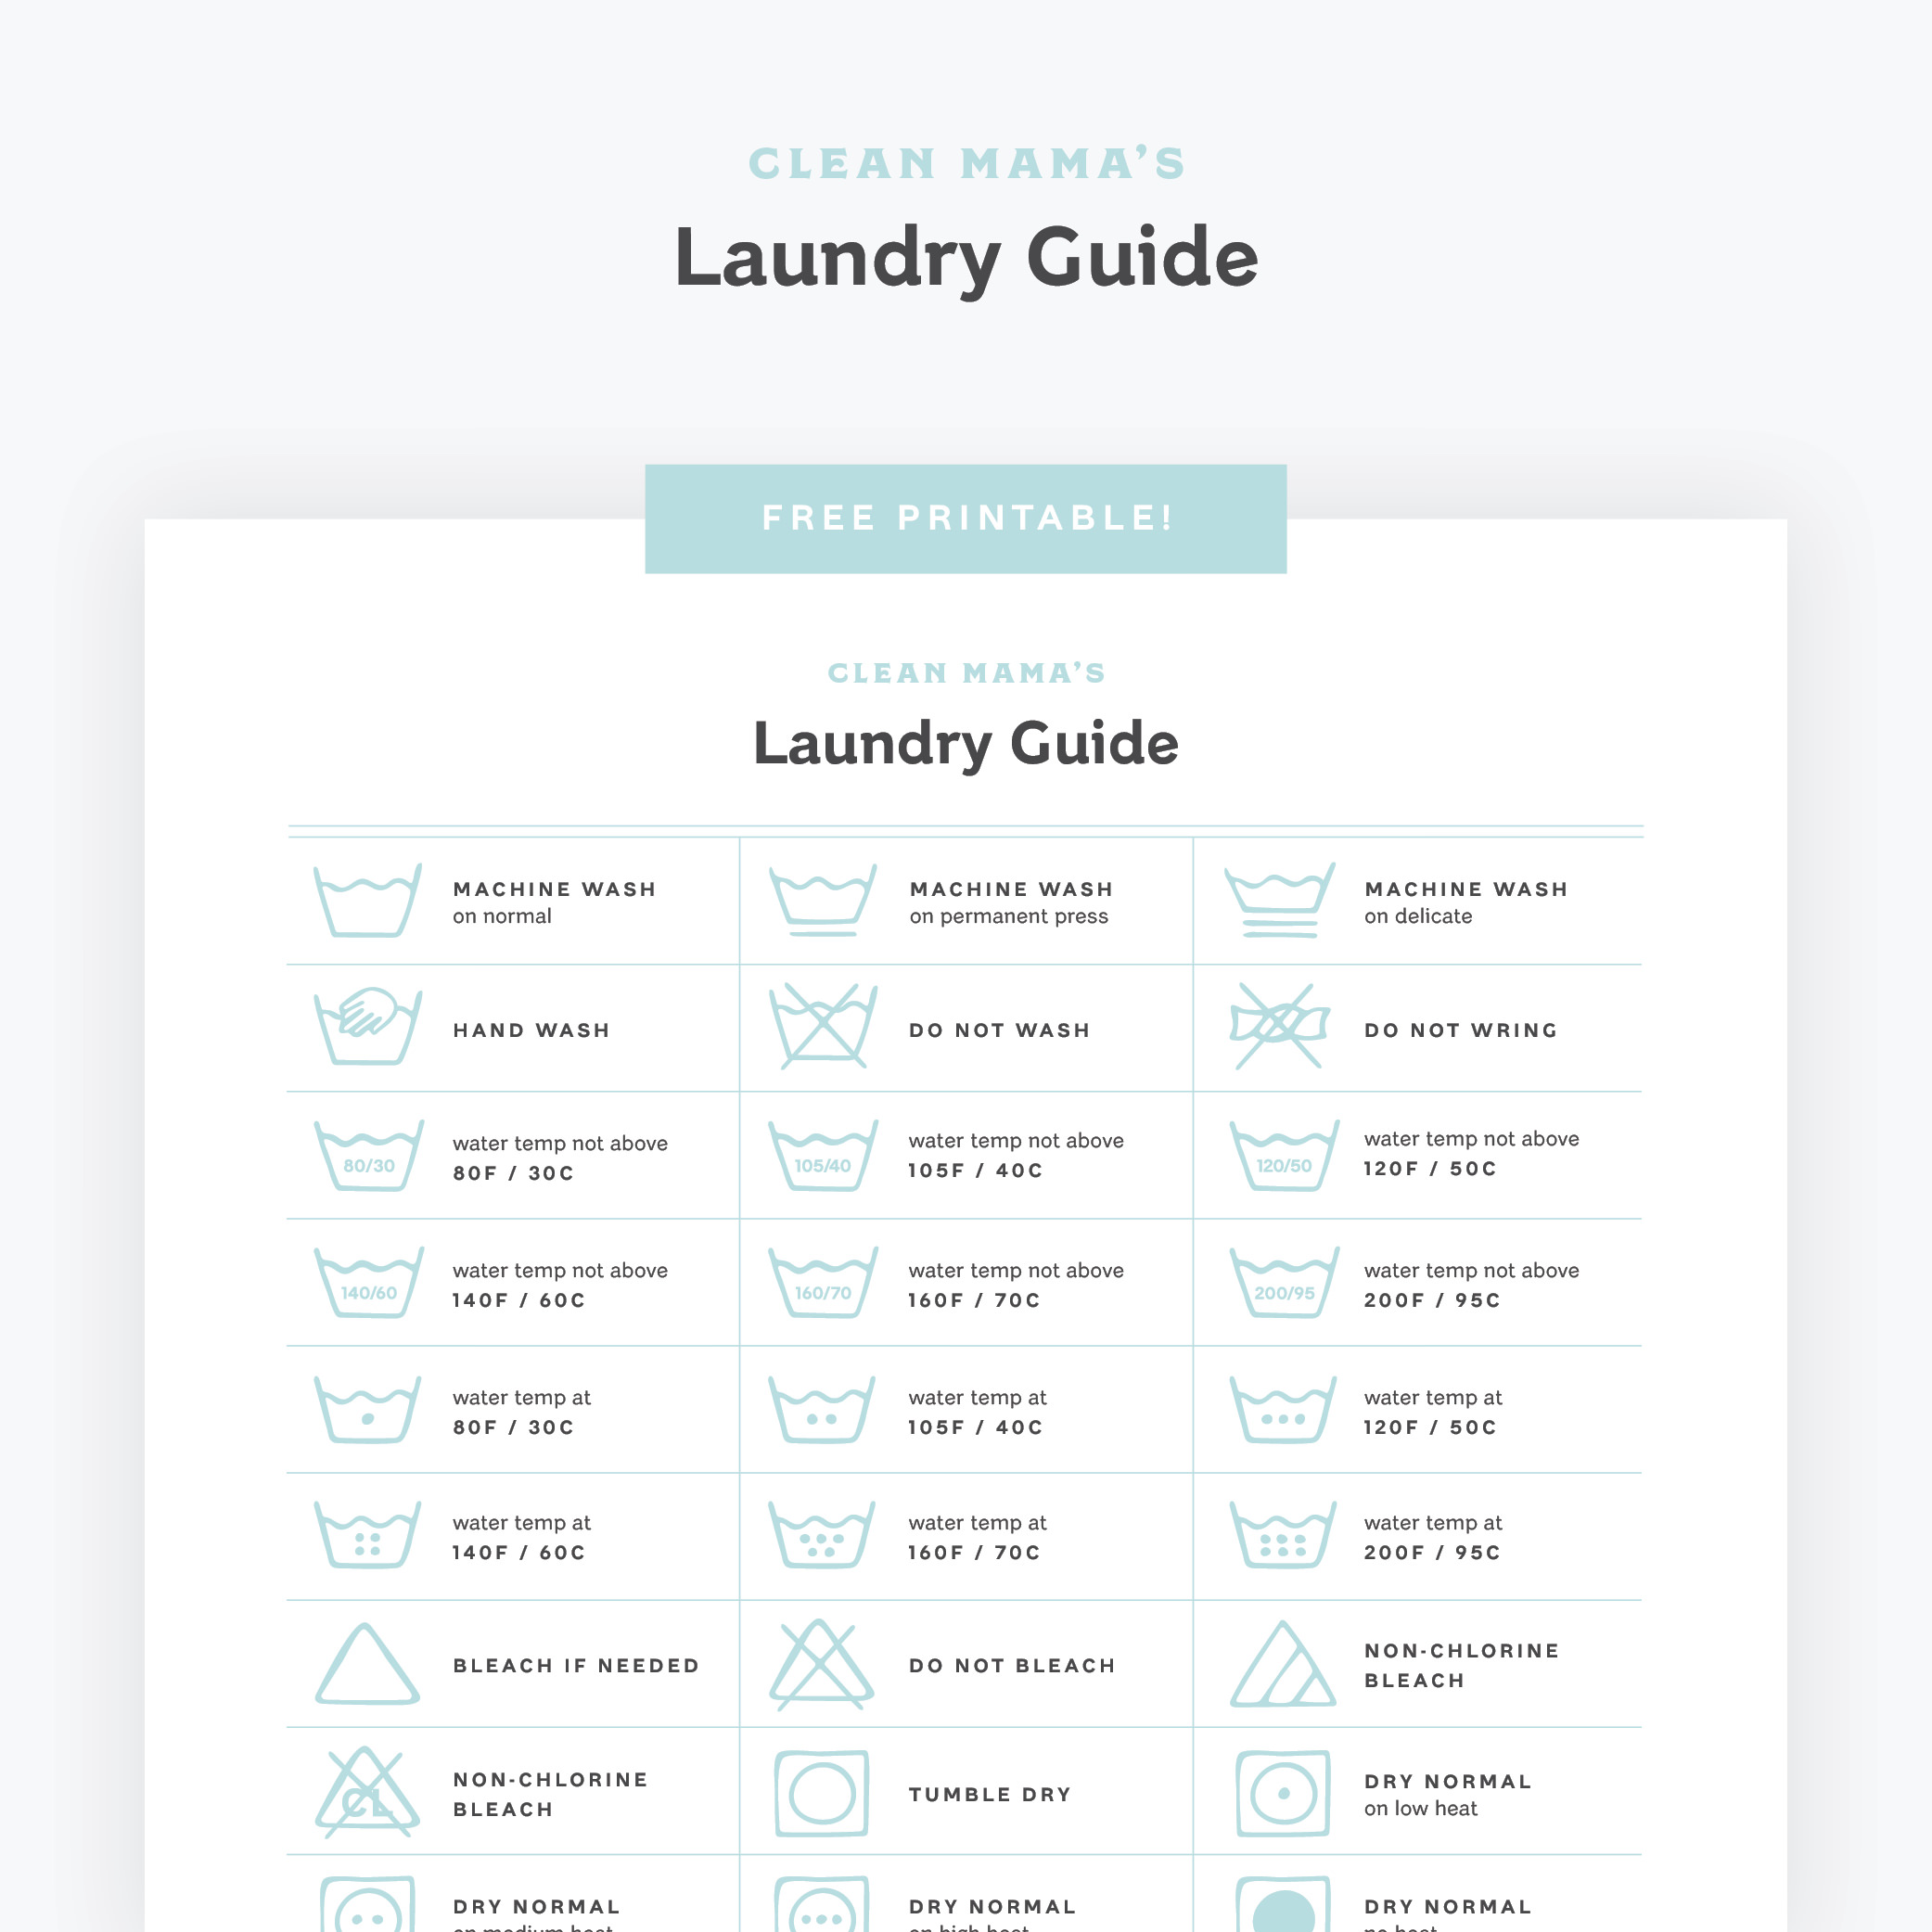 Laundry Guide by Clean Mama